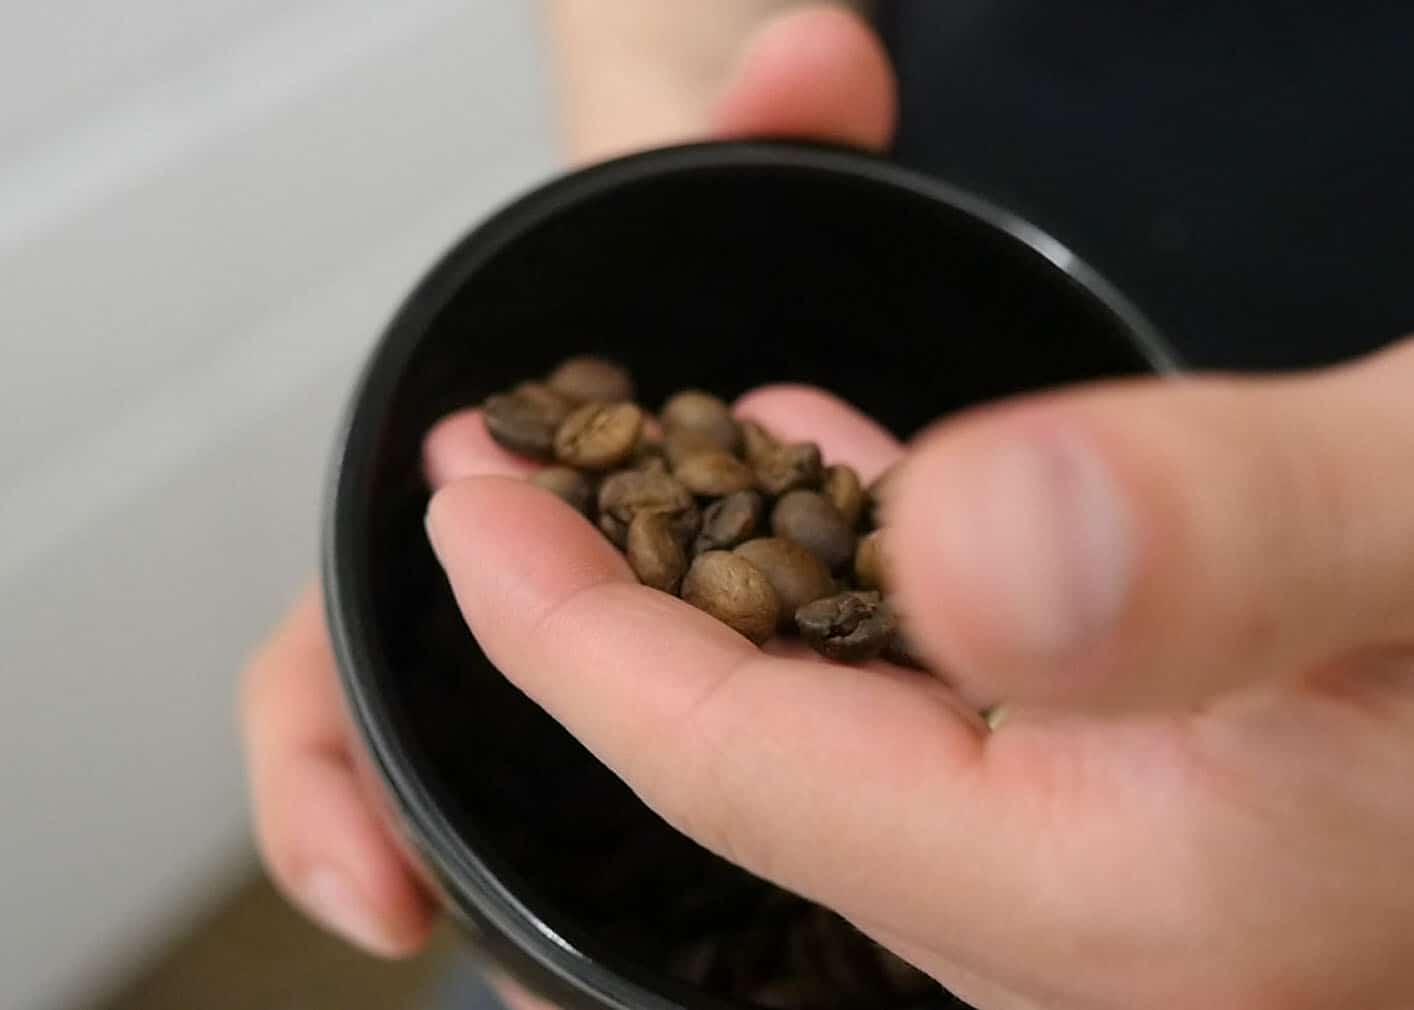 How To Store Coffee Beans - Vacuum Container or Zip Bag?